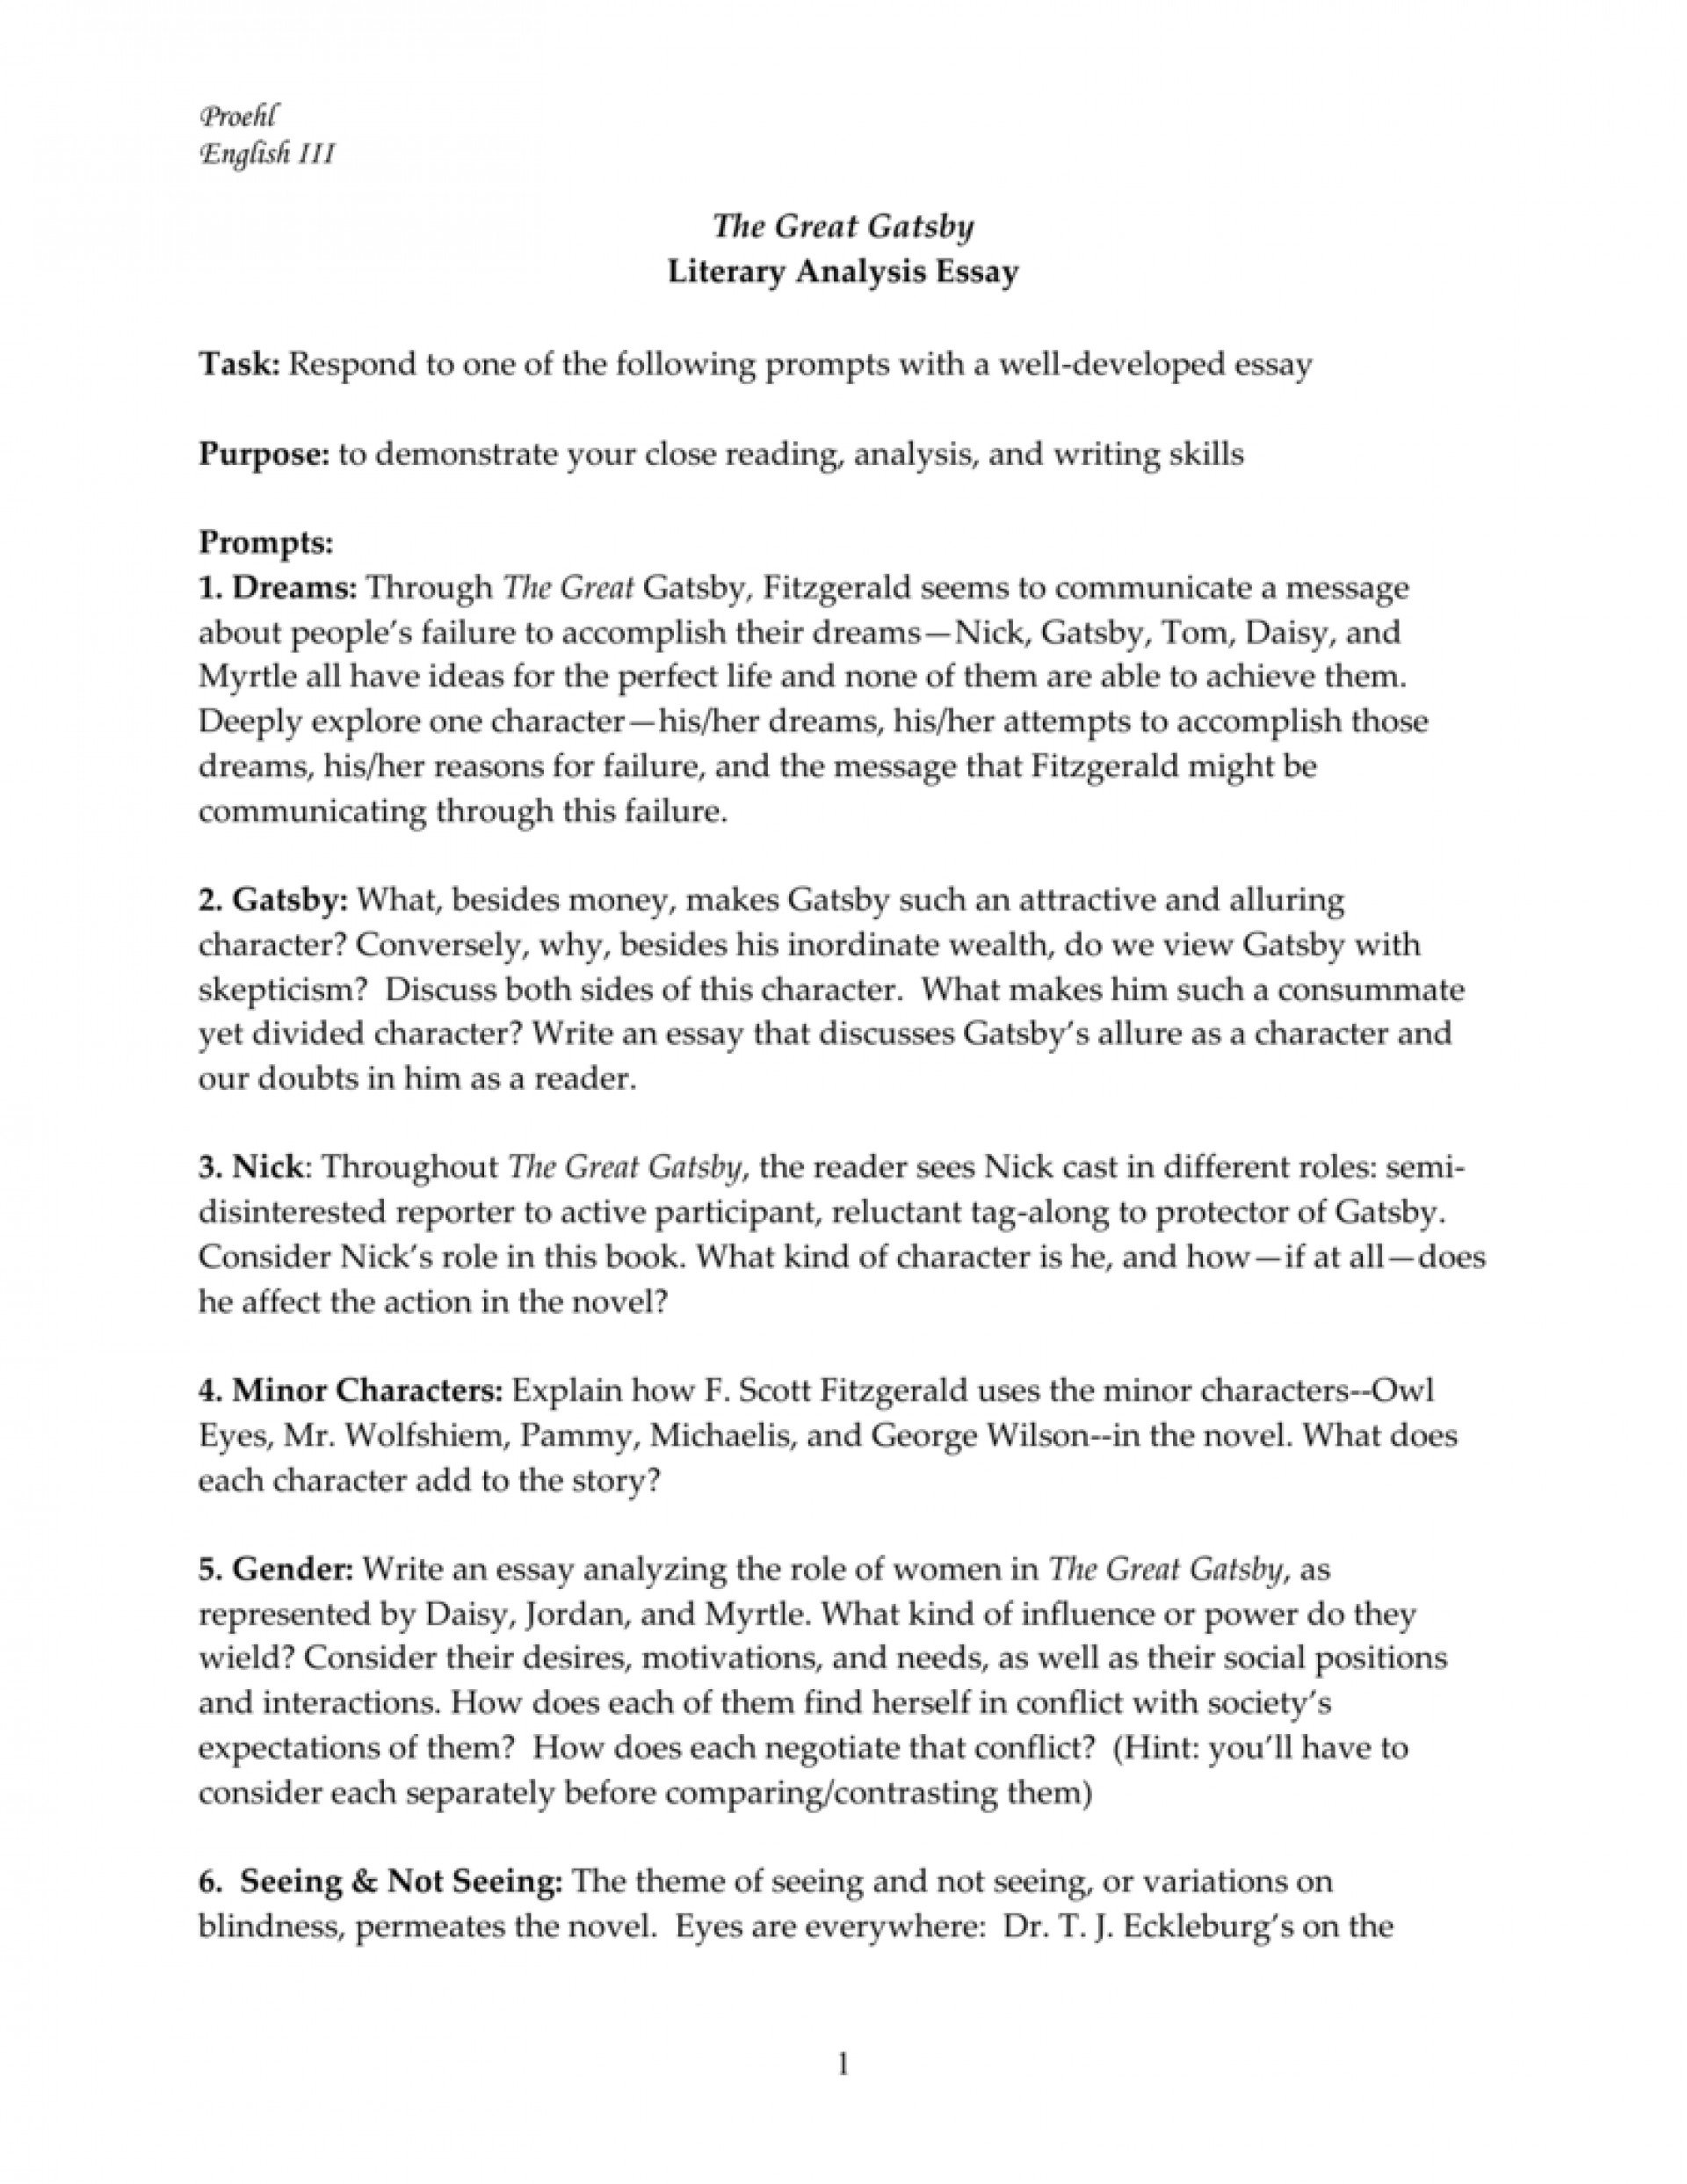 001 The Great Gatsby Essay 008001974 1 Singular Topics For American Dream Outline Conclusion 1920